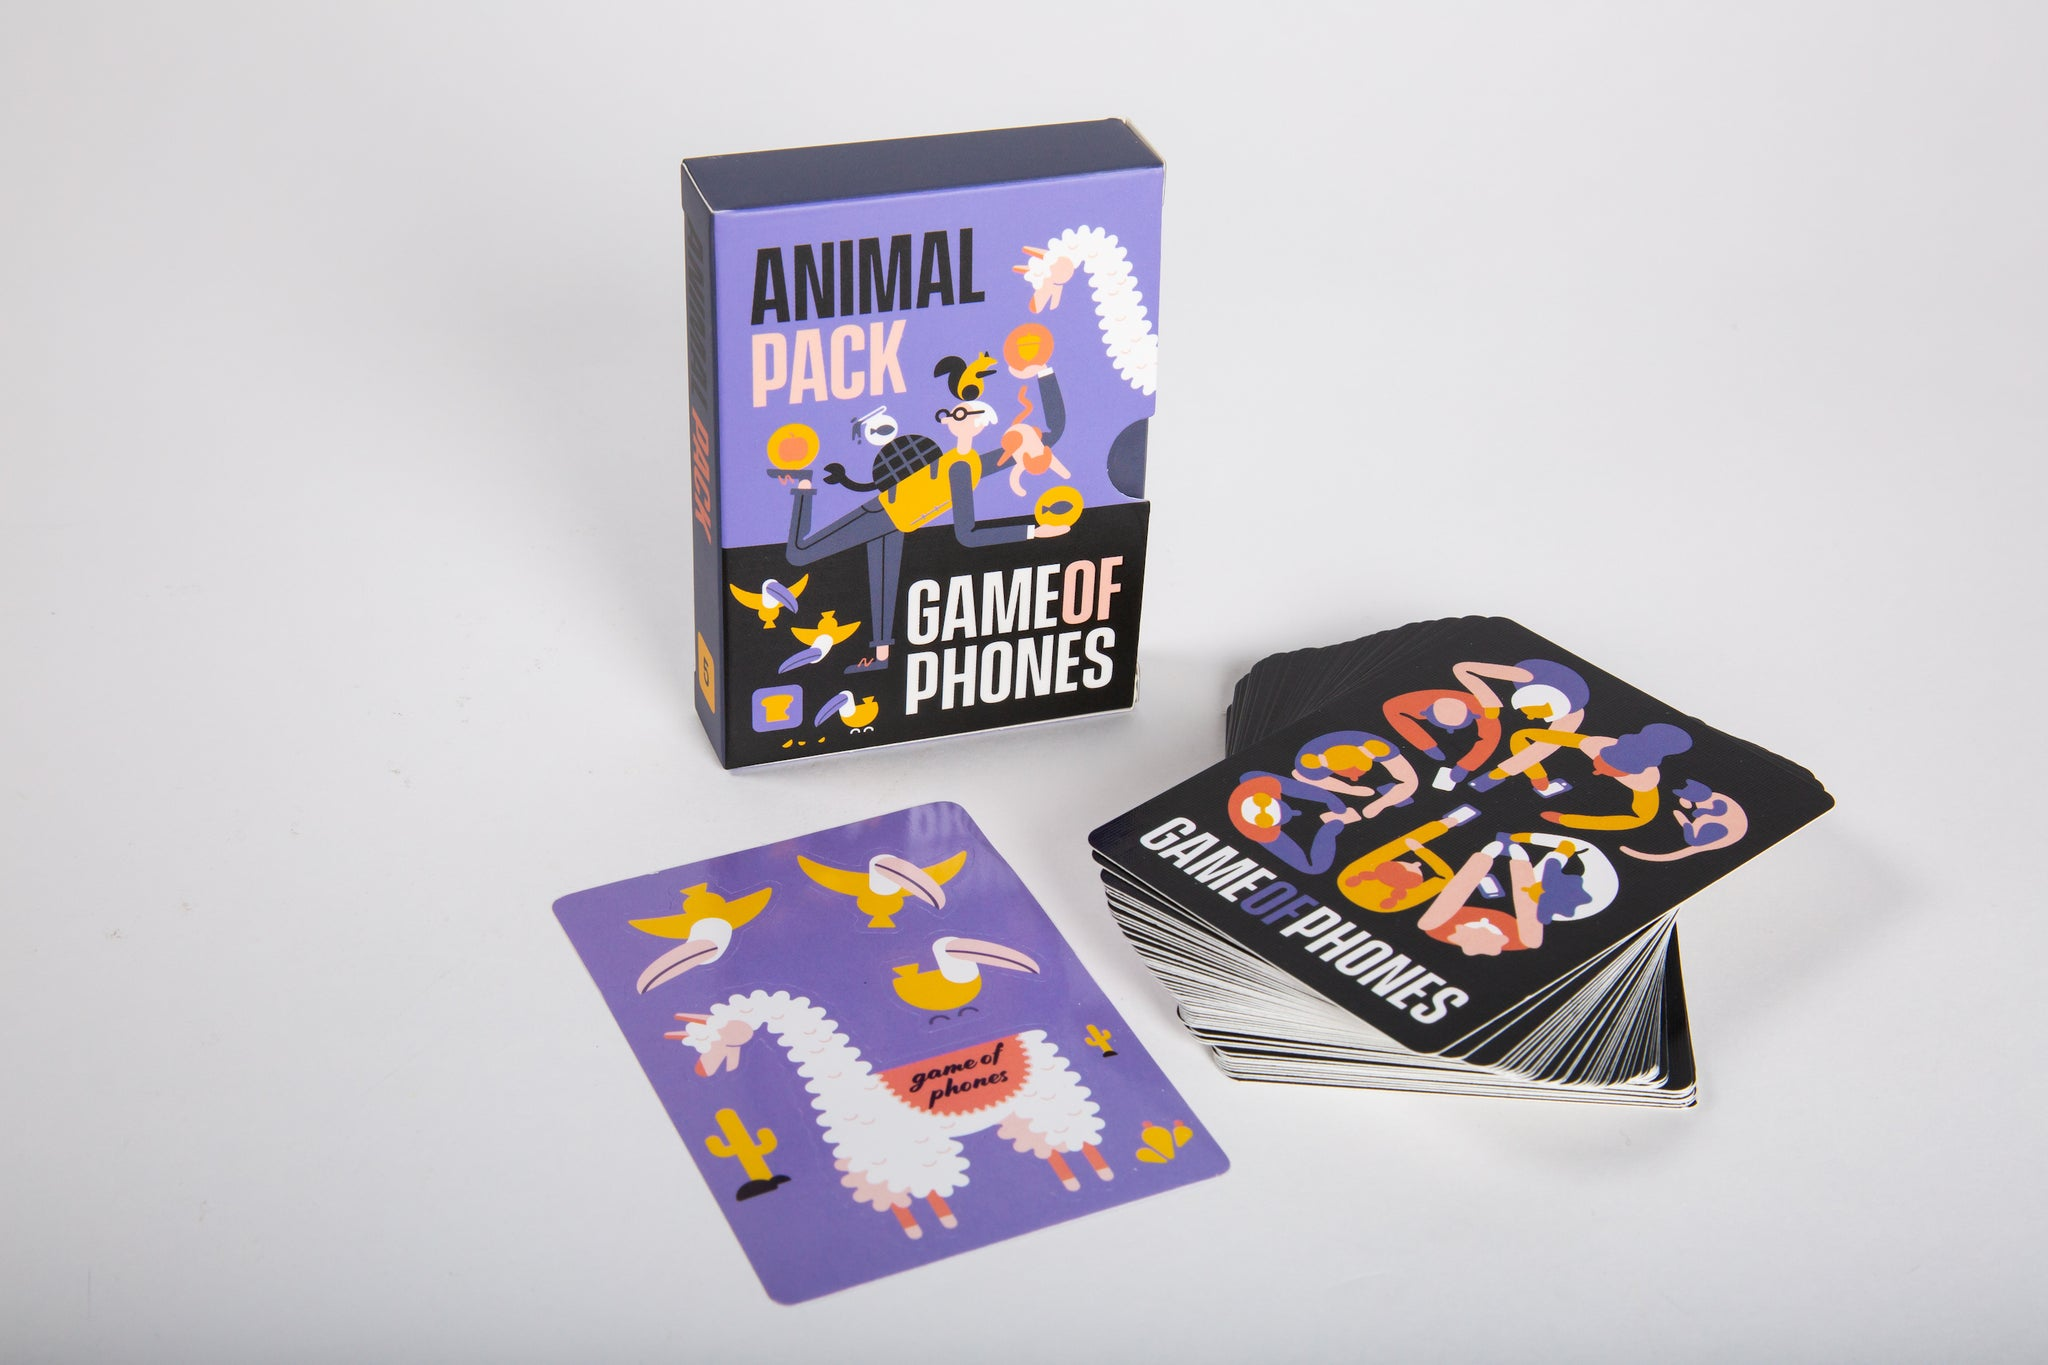 The Animal Mini Pack